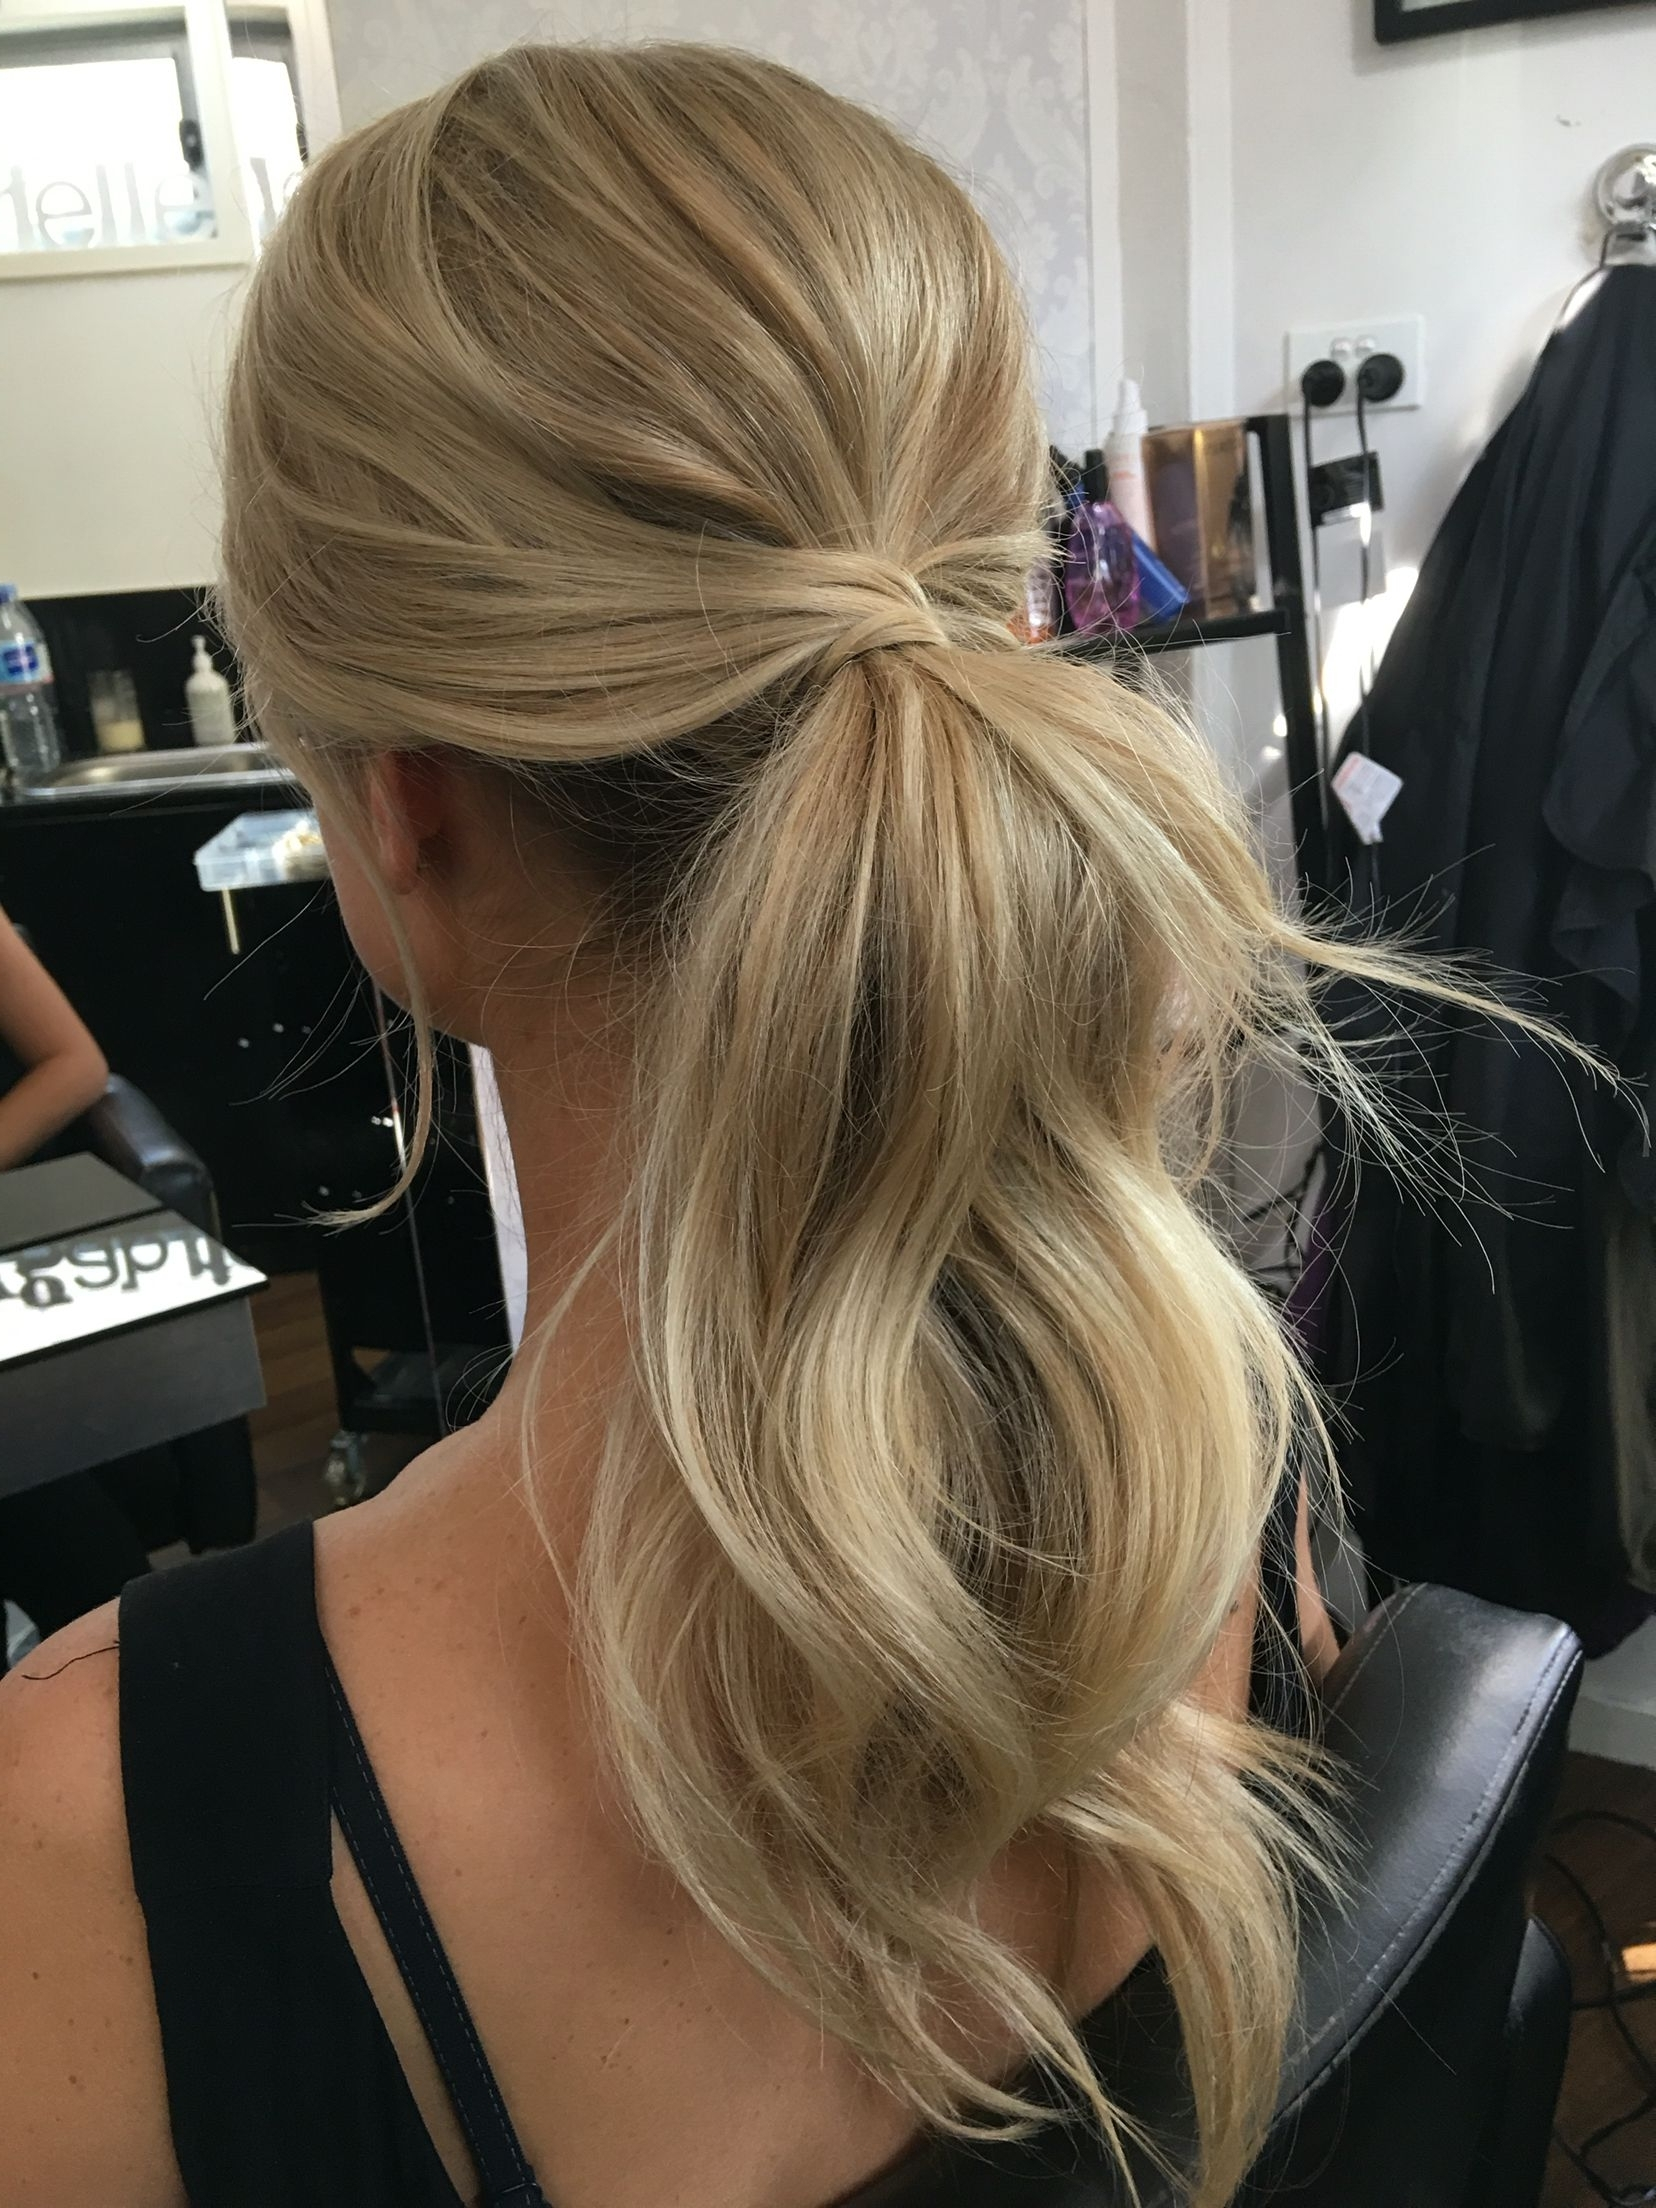 Wedding Hairstyles (View 18 of 20)